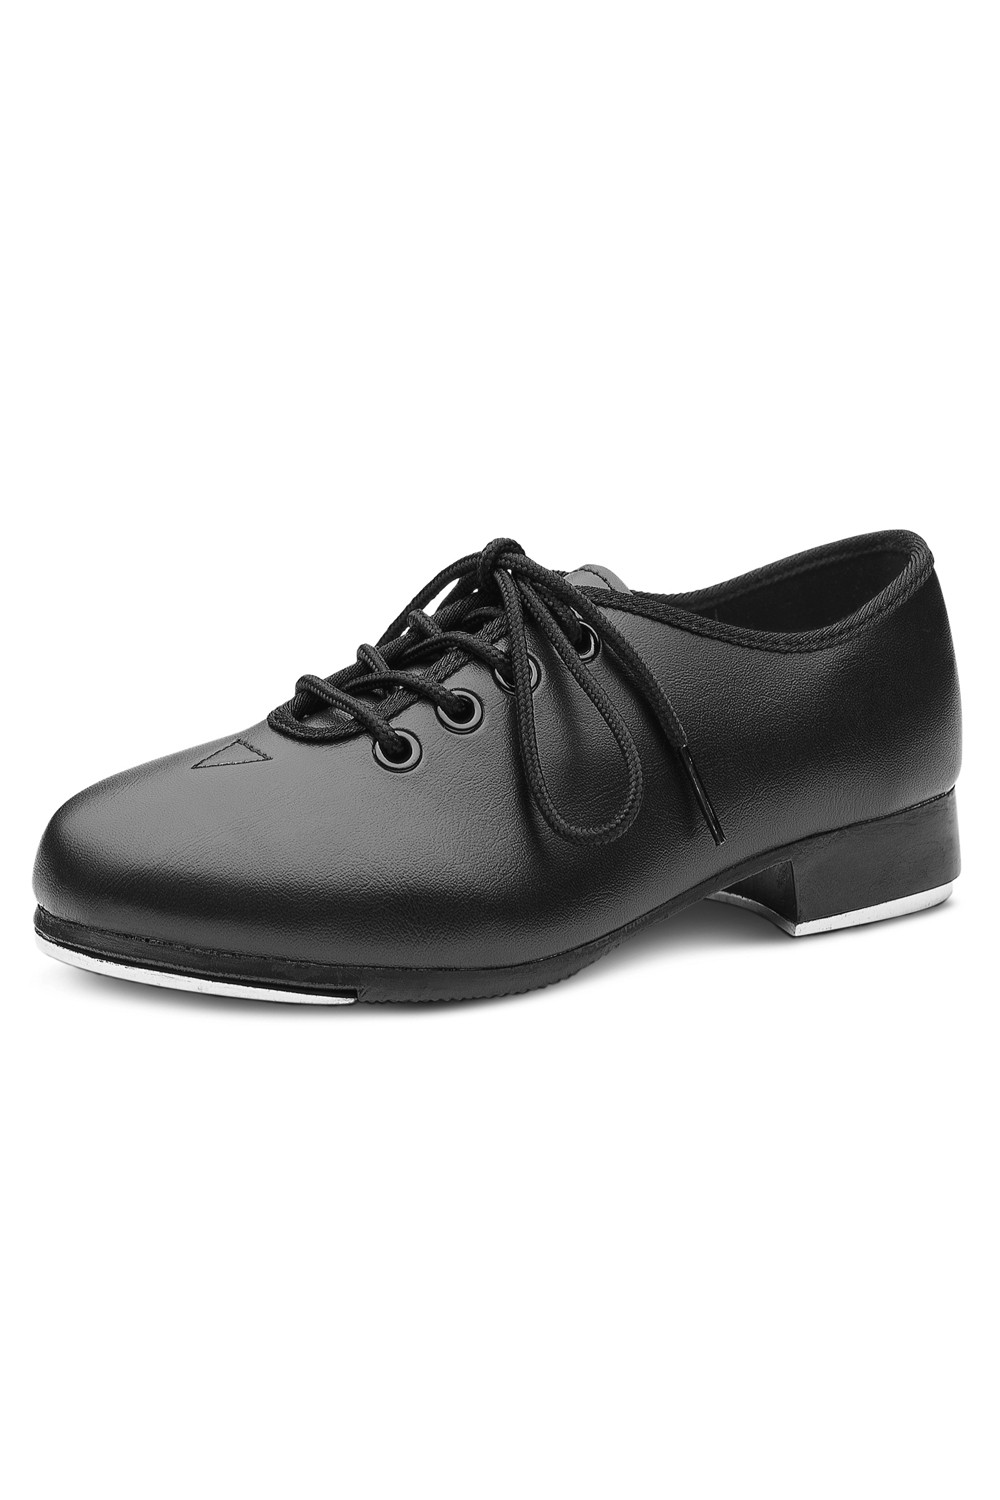 Economyjazz Tap Women's Tap Shoes